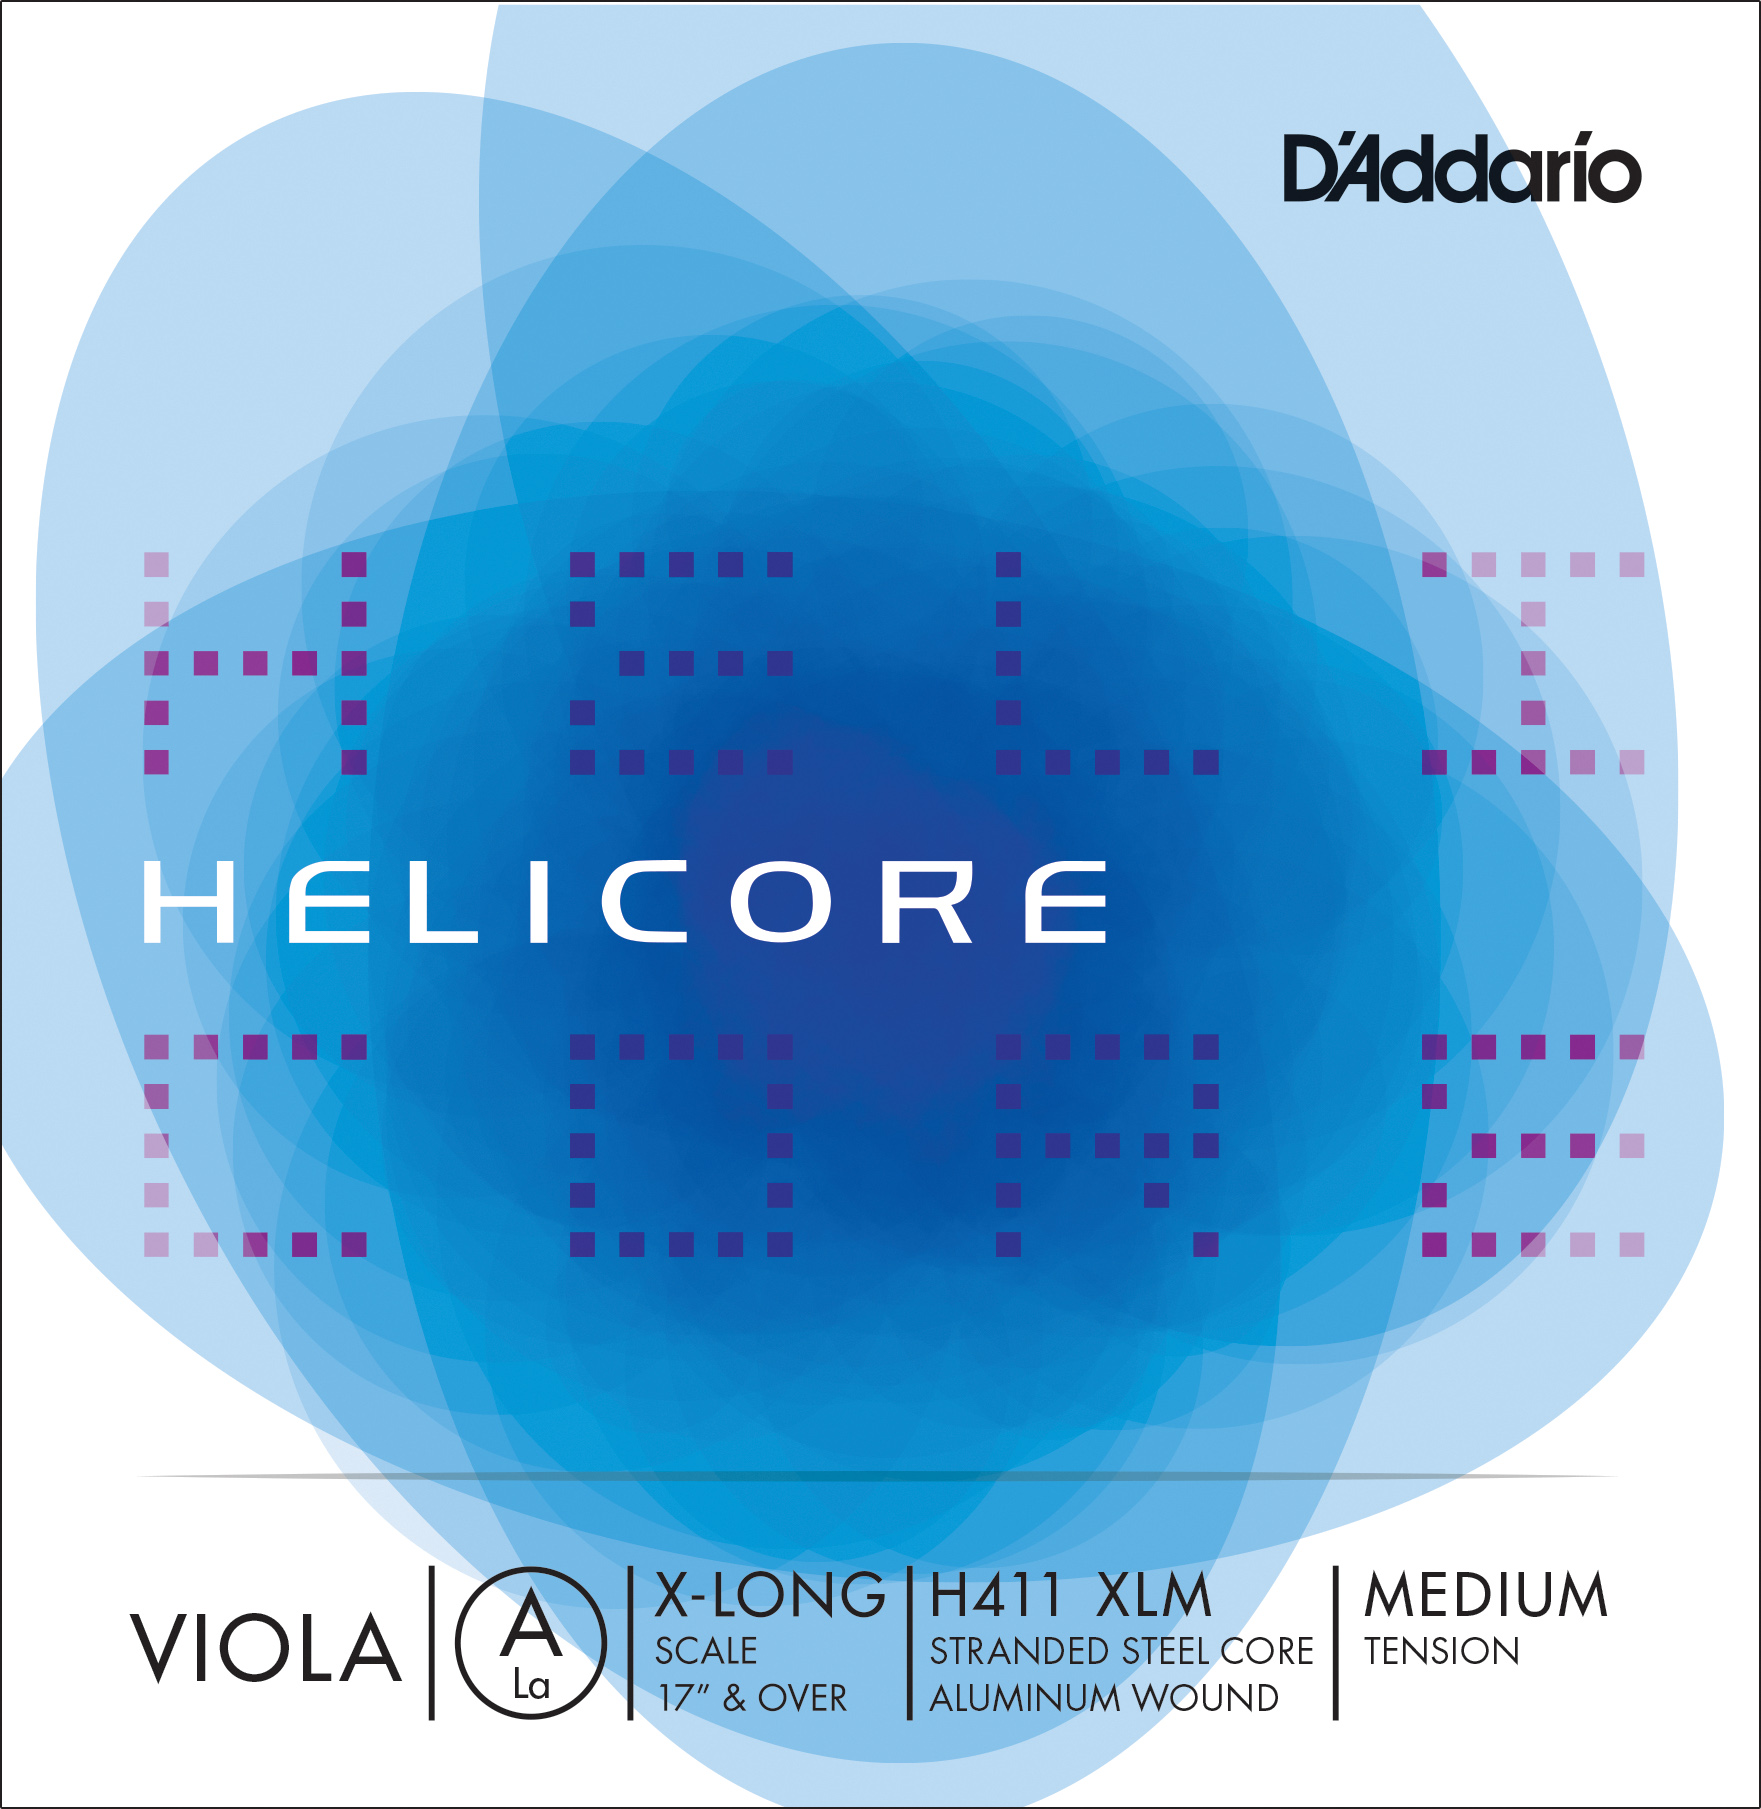 D'Addario Helicore Viola Single A String, Extra Long Scale, Medium Tension